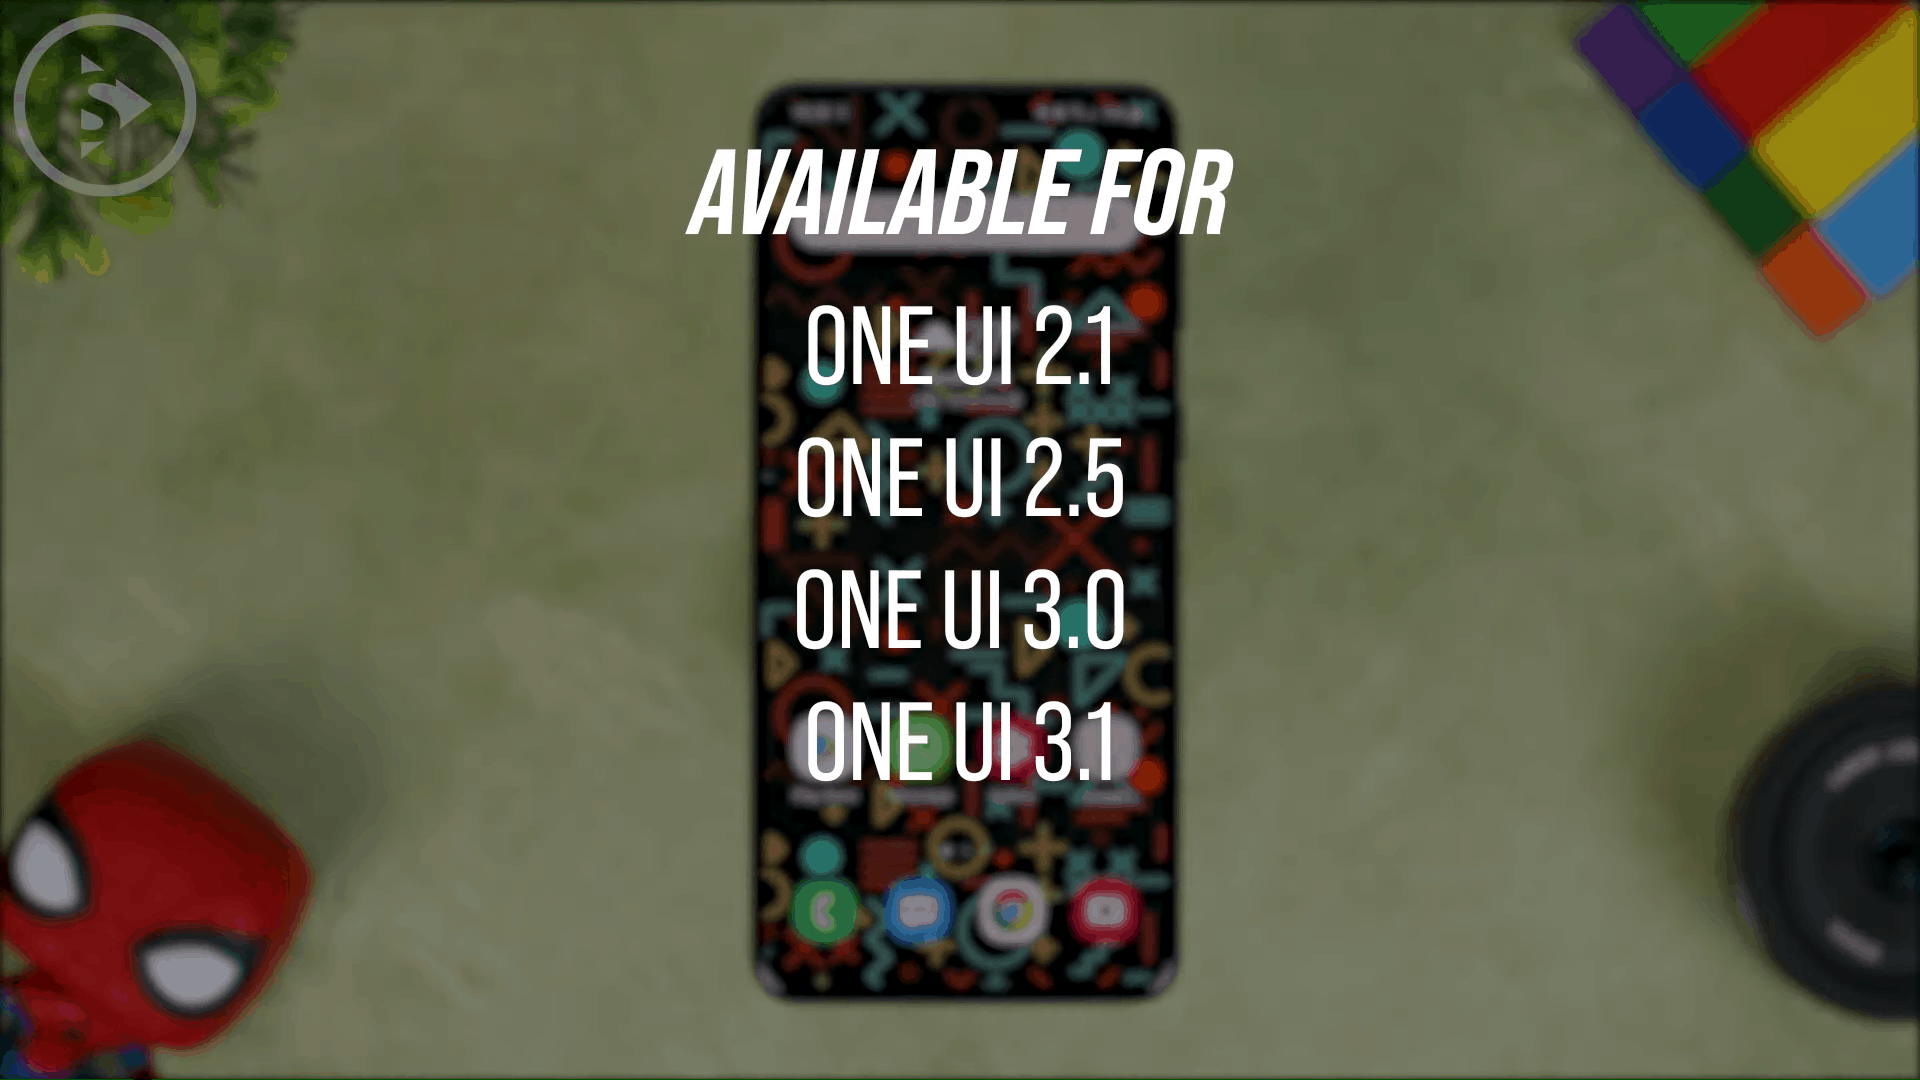 One UI 2.1, 2.5, 3.0 dan 3.1 - 4 Latest Features To Edit Photos and Videos in Various Versions of One UI Without Third Party Apps